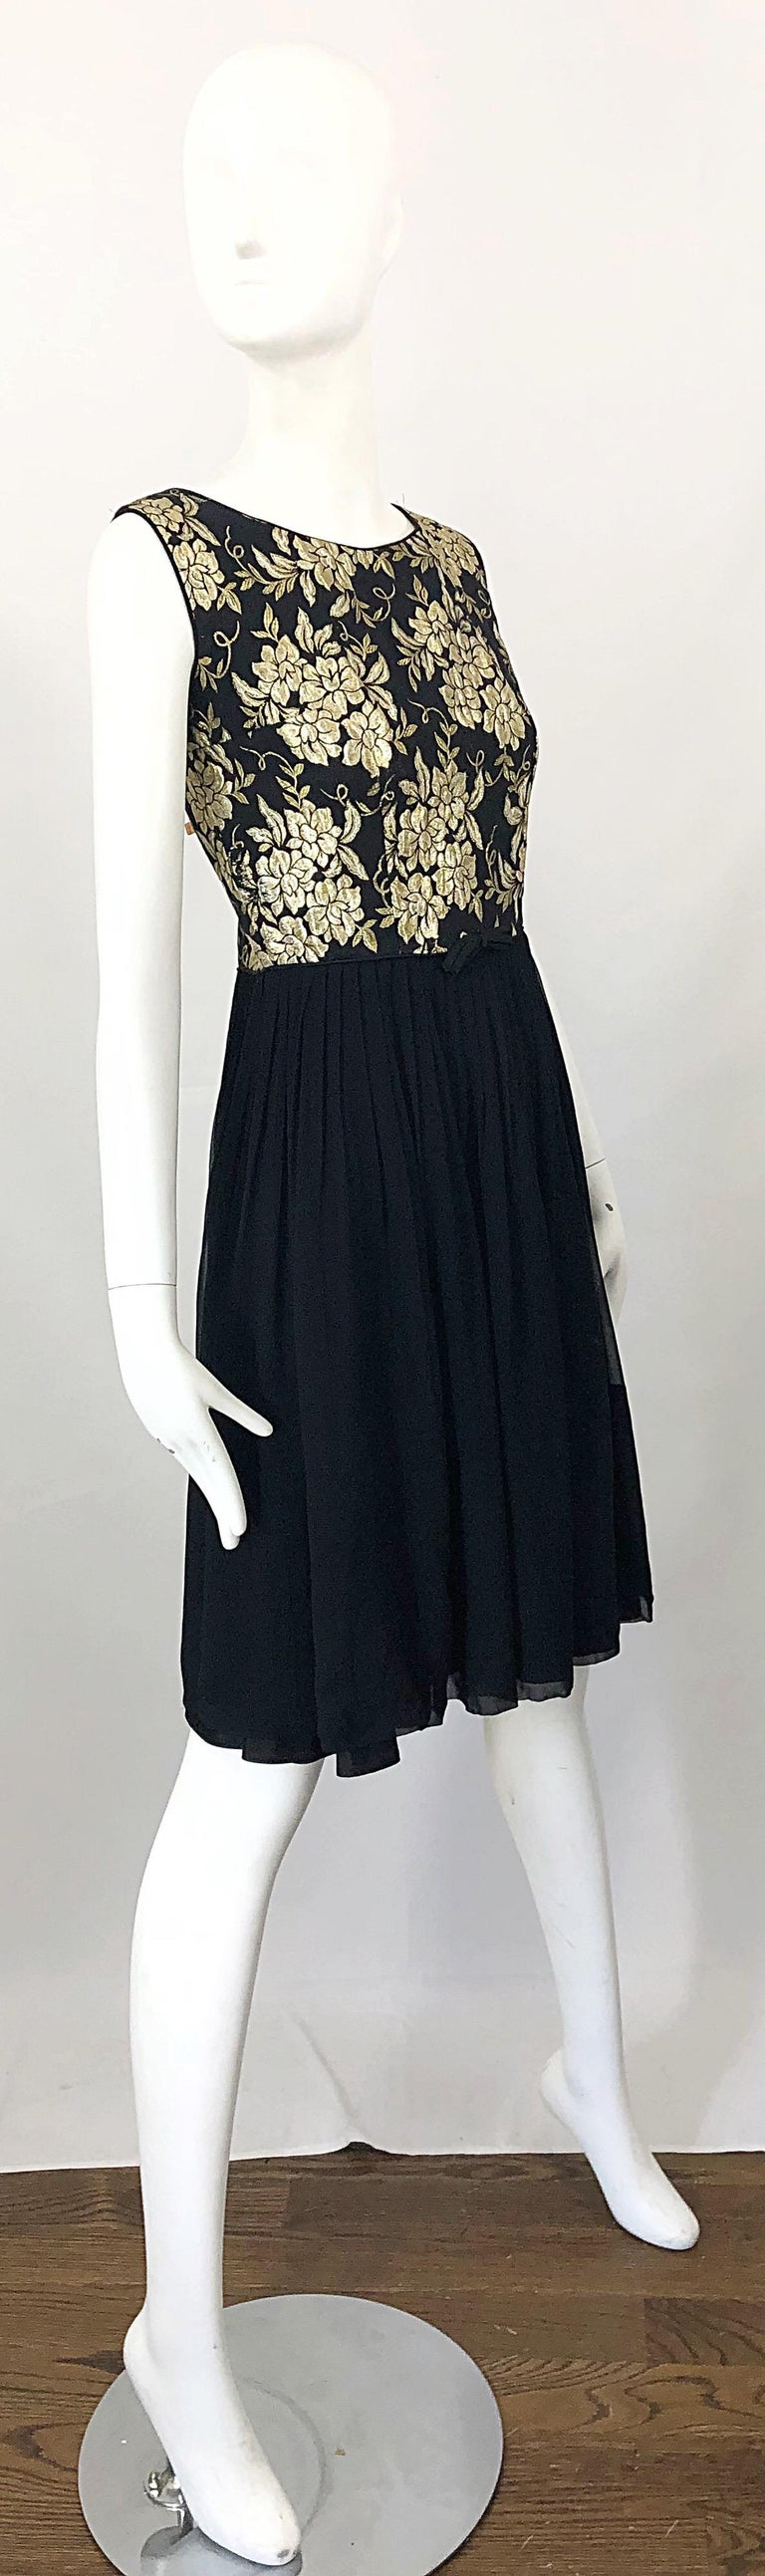 1950s Demi Couture Gold + Black Silk Brocade and Chiffon Vintage 50s Dress For Sale 7